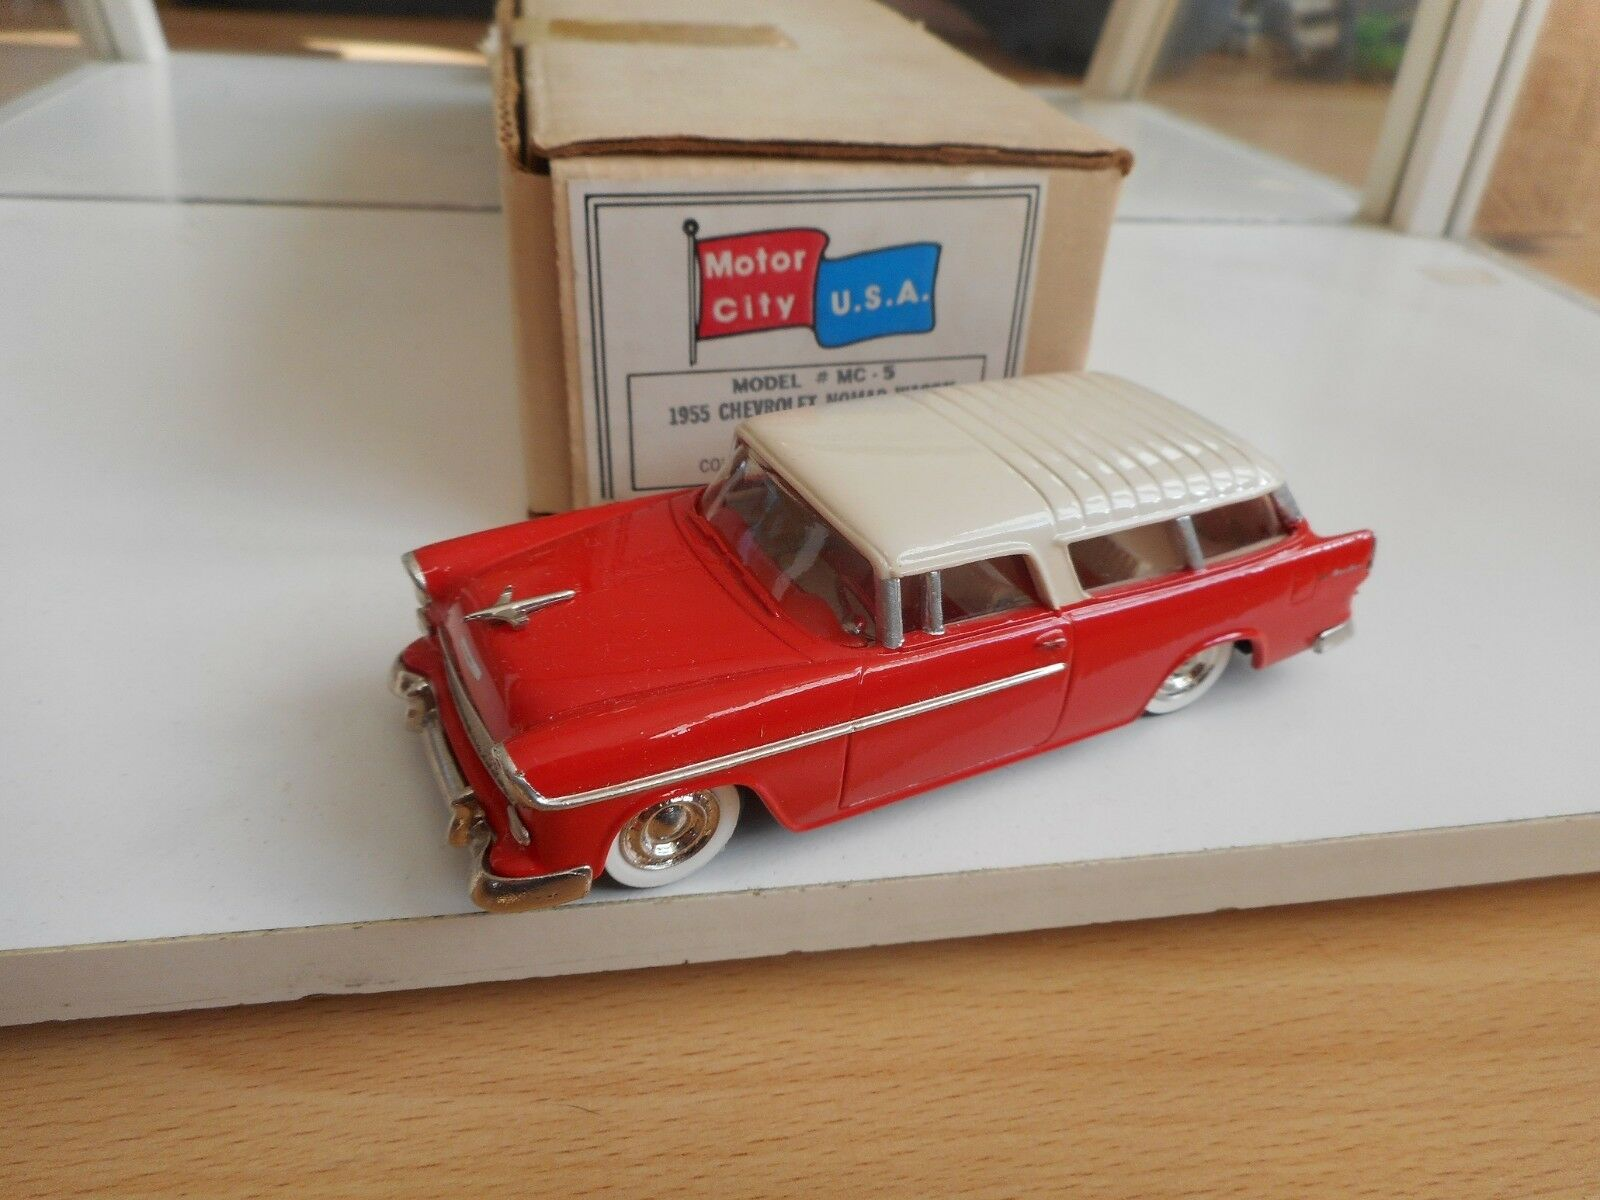 Motor City USA 1955 Chevrolet Nomad Wagon in rouge on 1 43 in Box